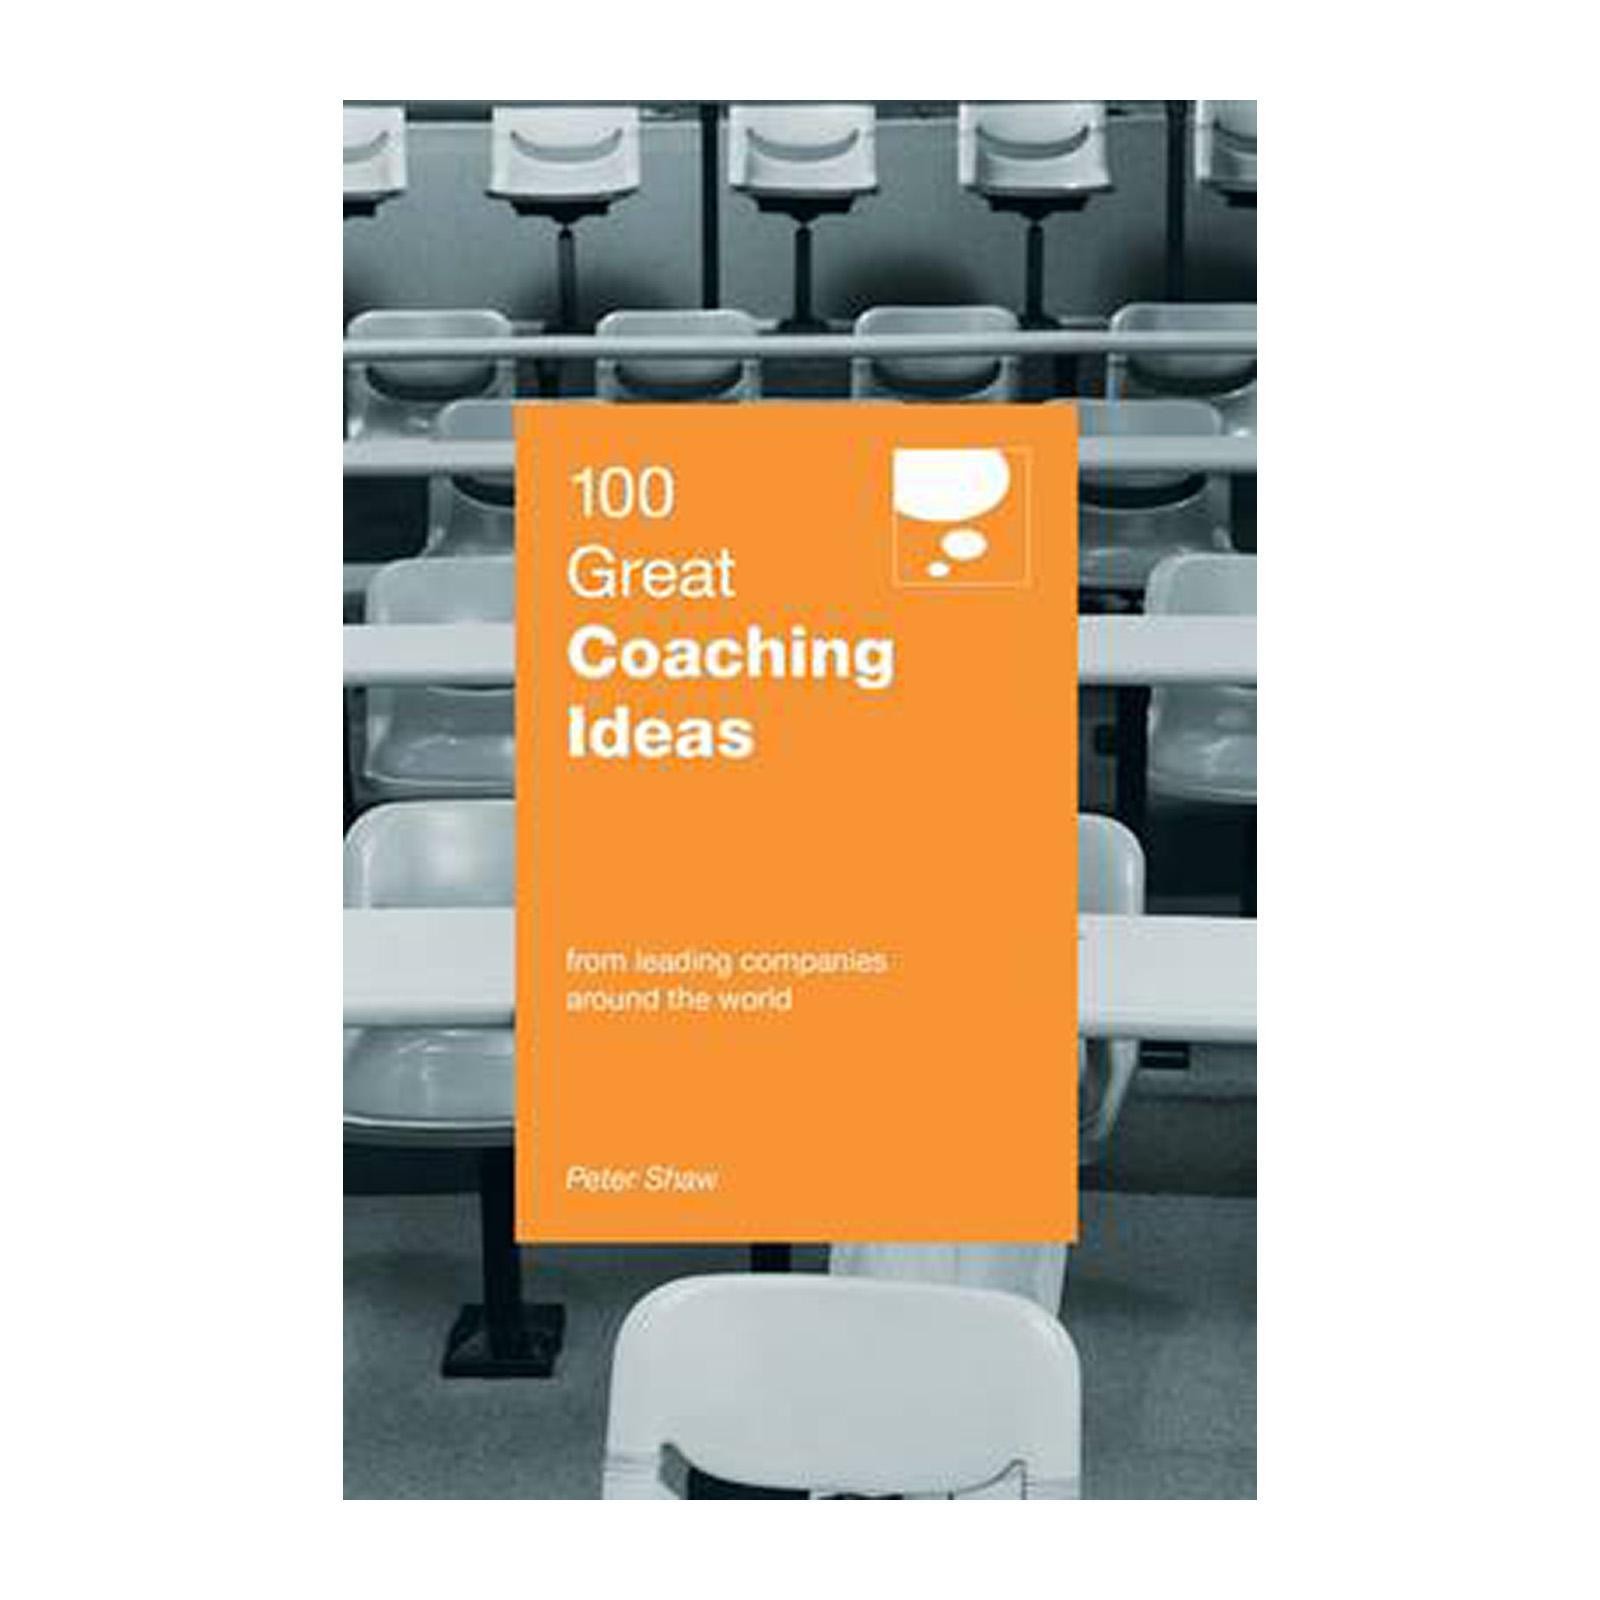 100 Great Coaching Ideas (Paperback)